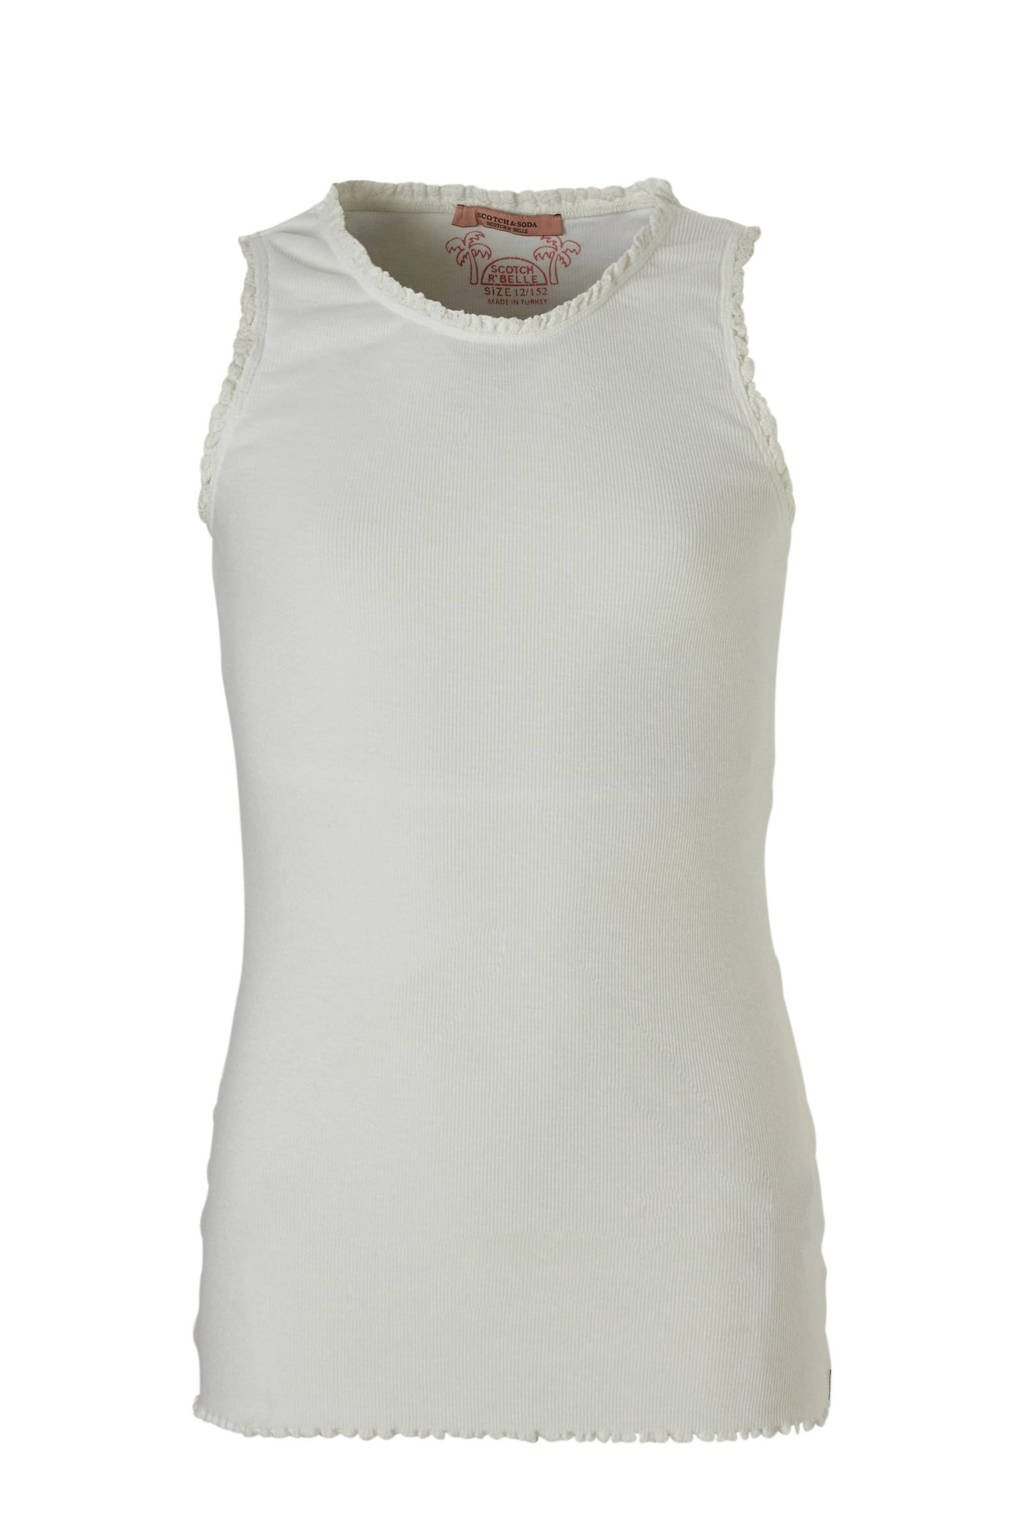 Scotch & Soda mouwloos T-shirt met ruches offwhite, Offwhite